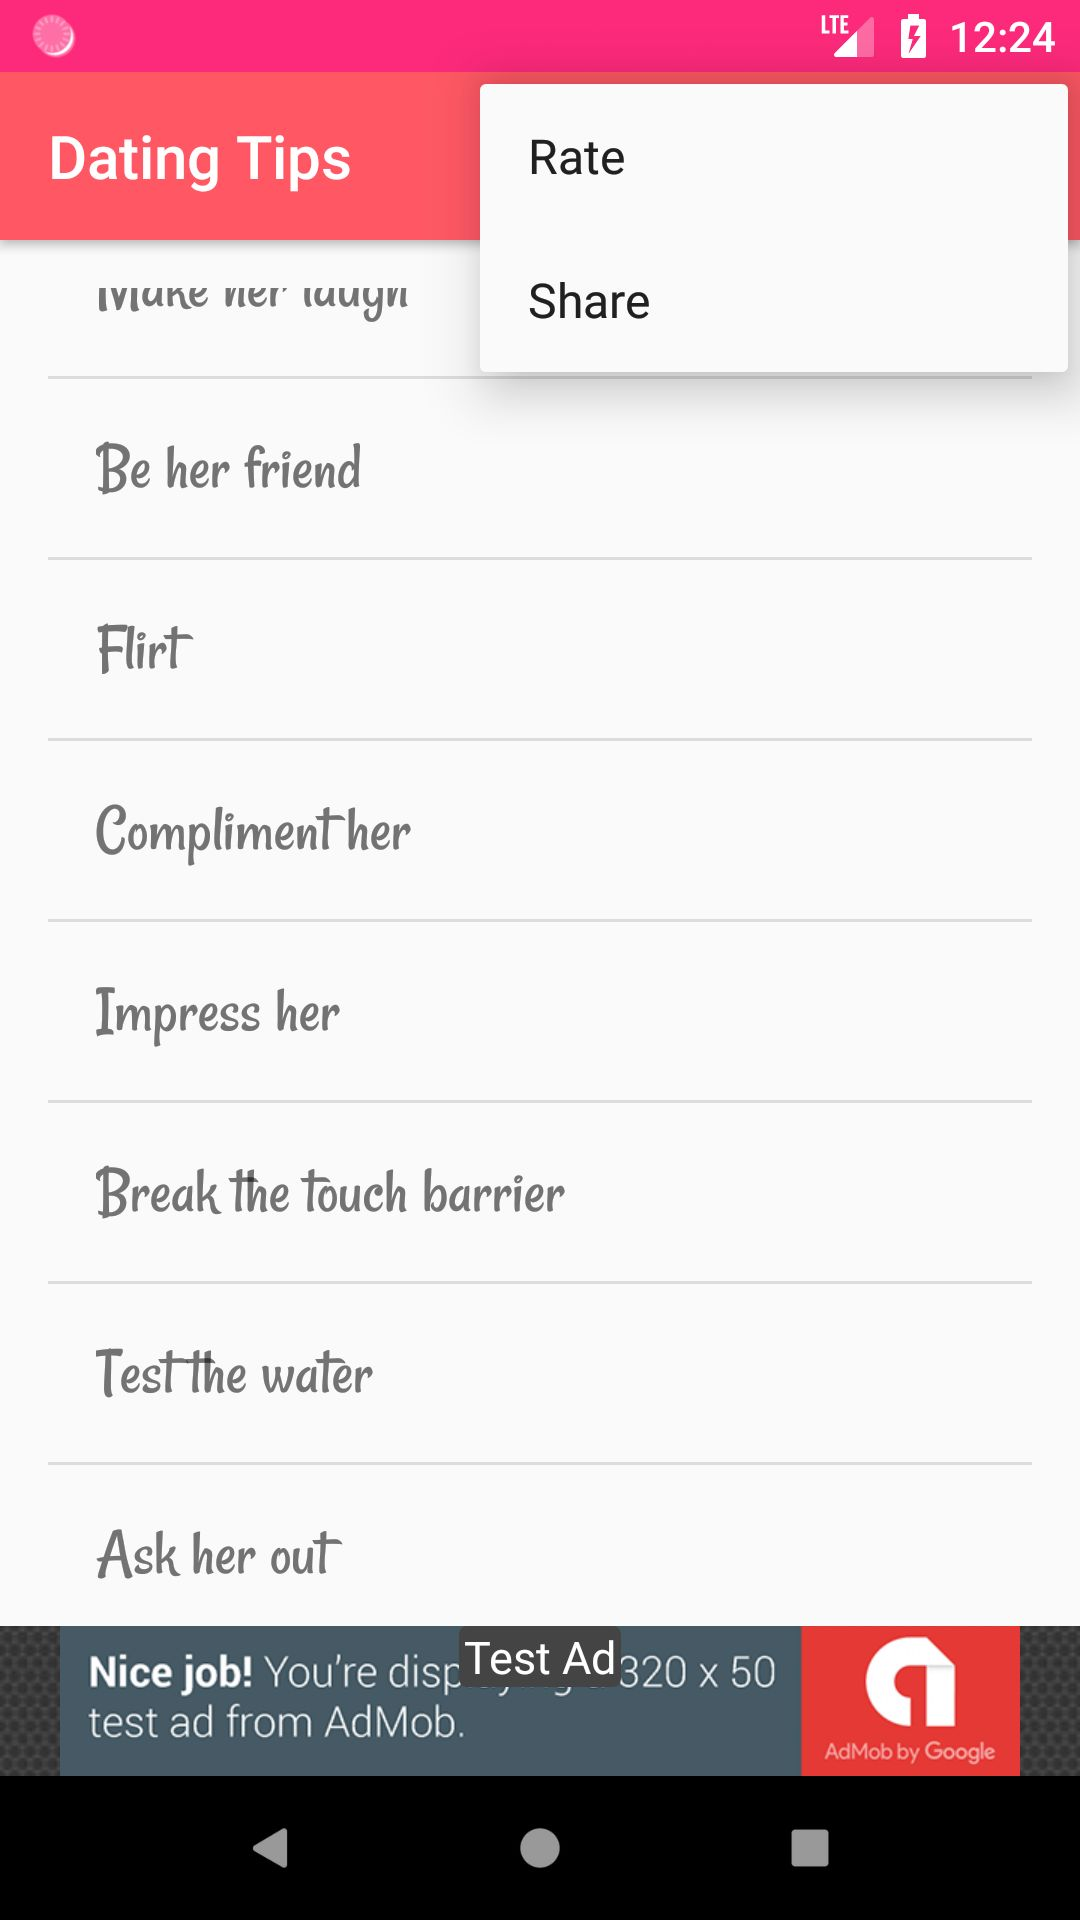 Dating Tips - Android App Source Code Screenshot 6